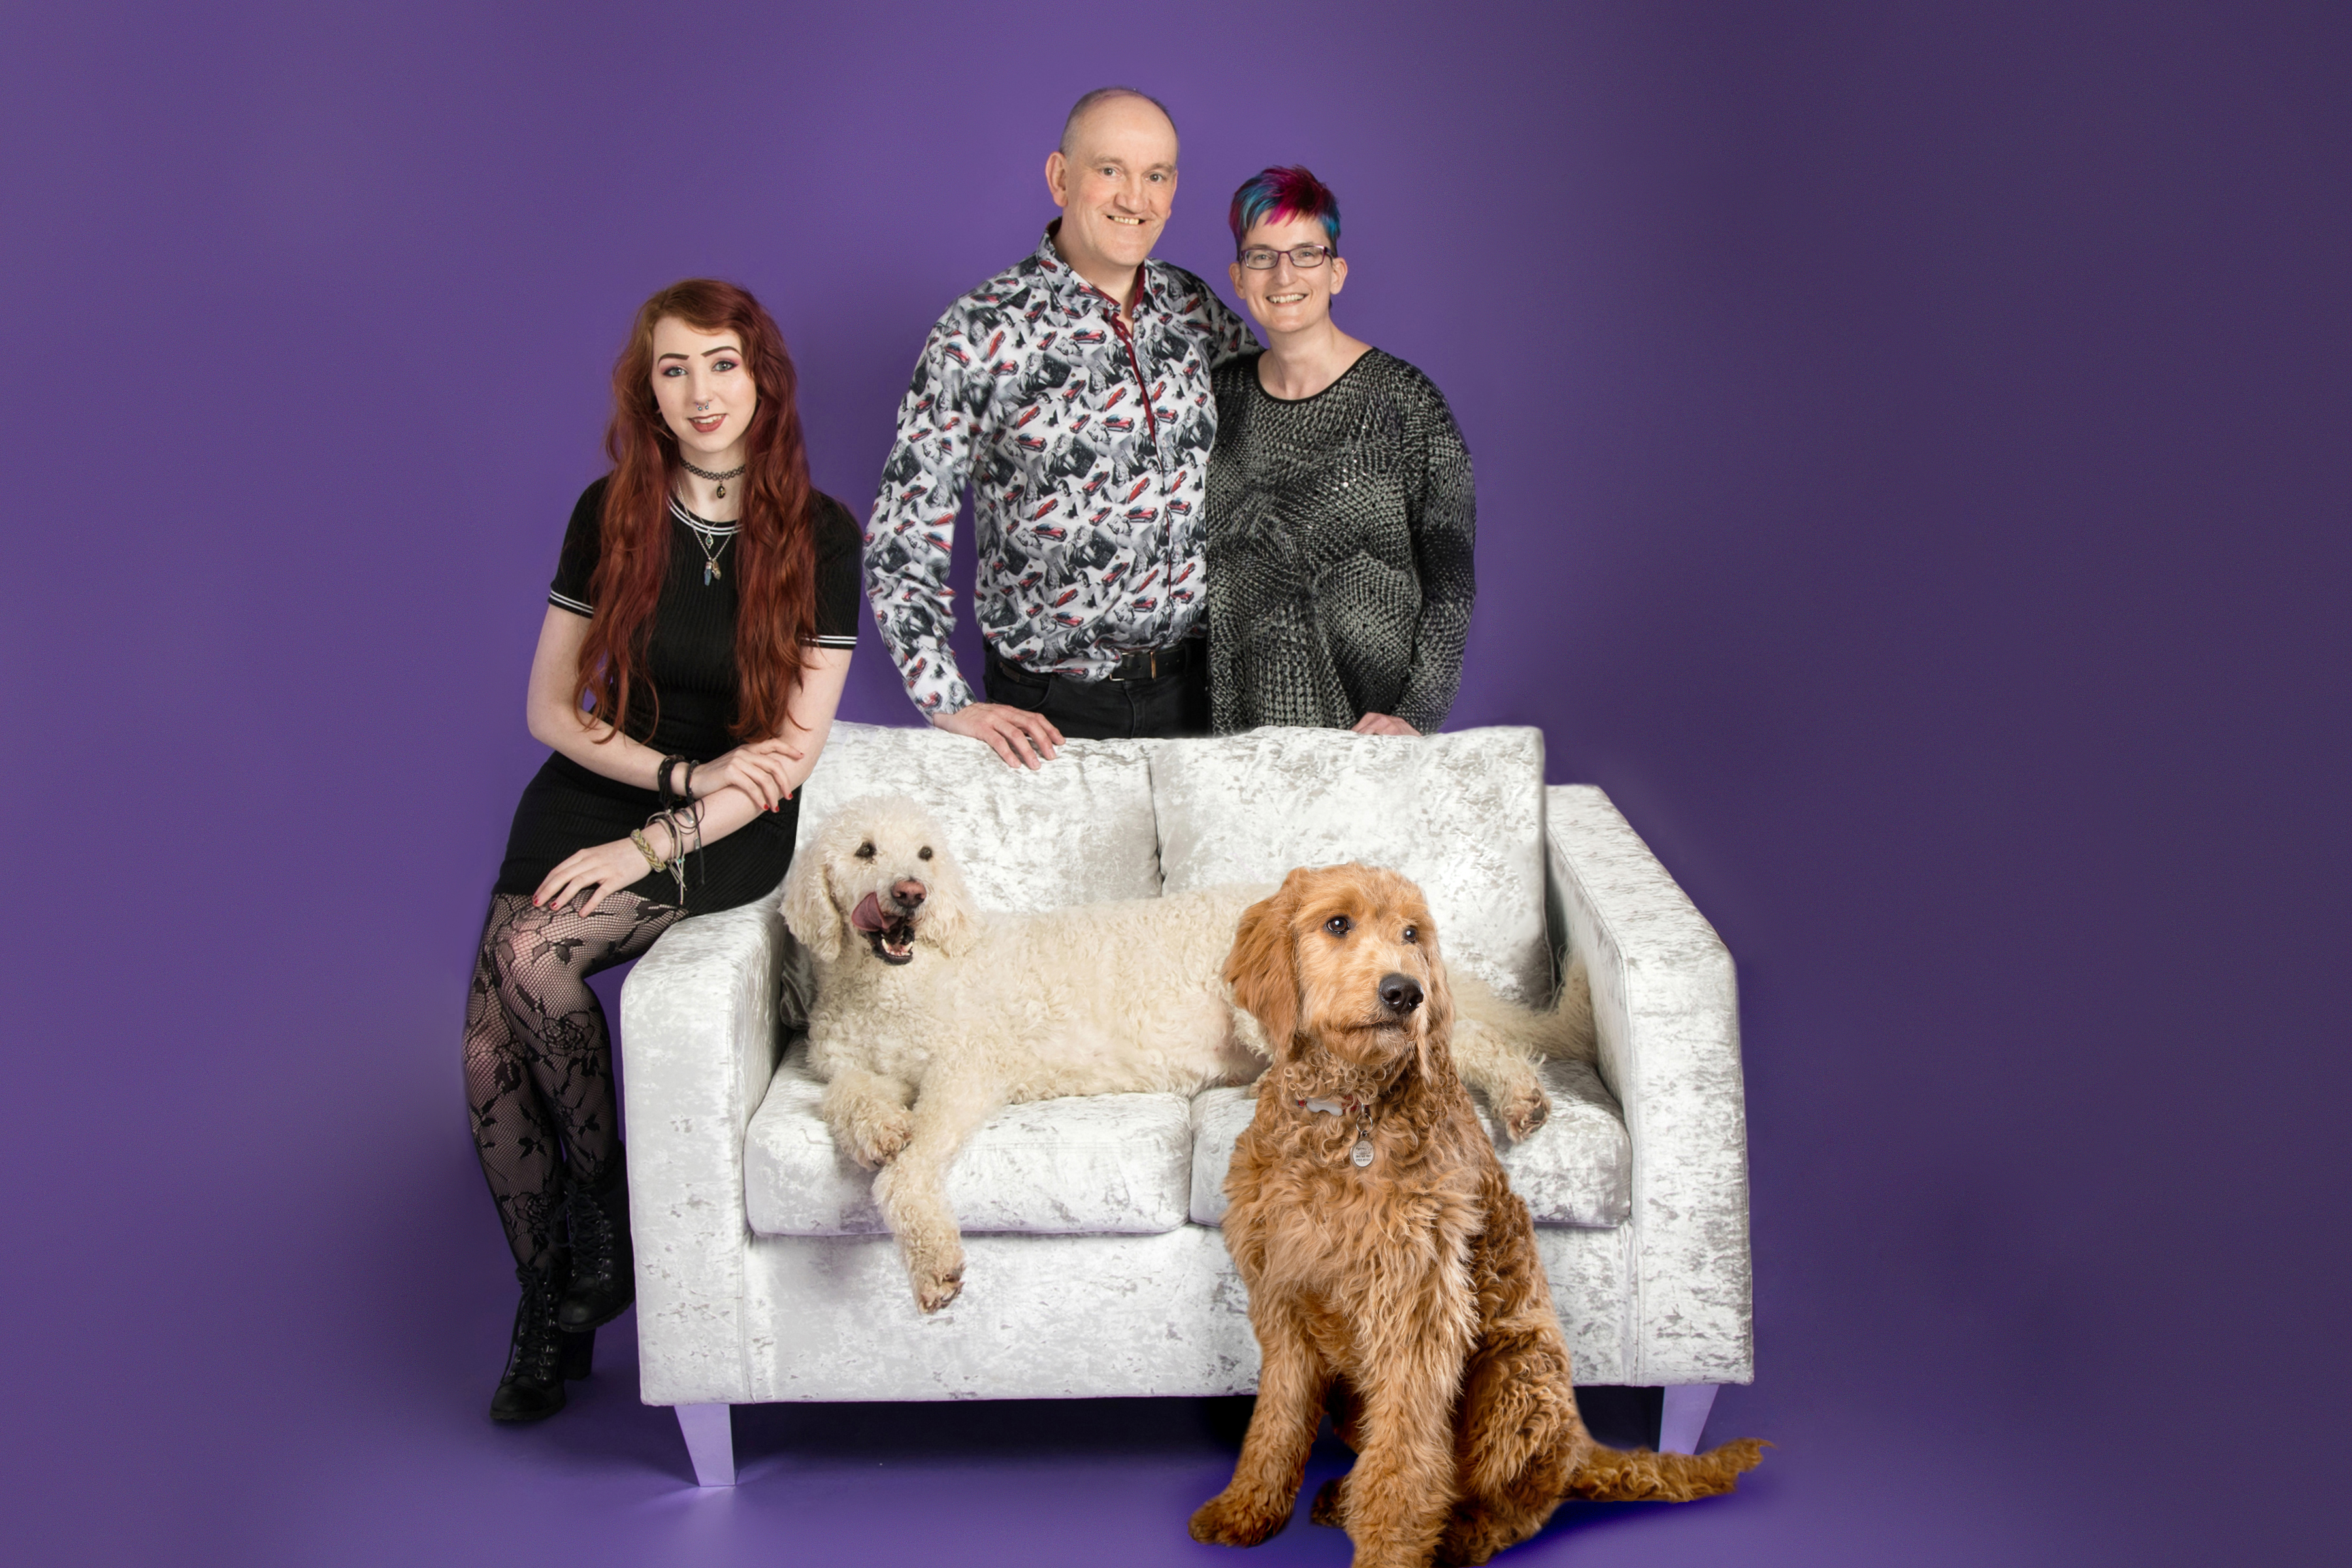 smart photography team photo around sofa including dogs